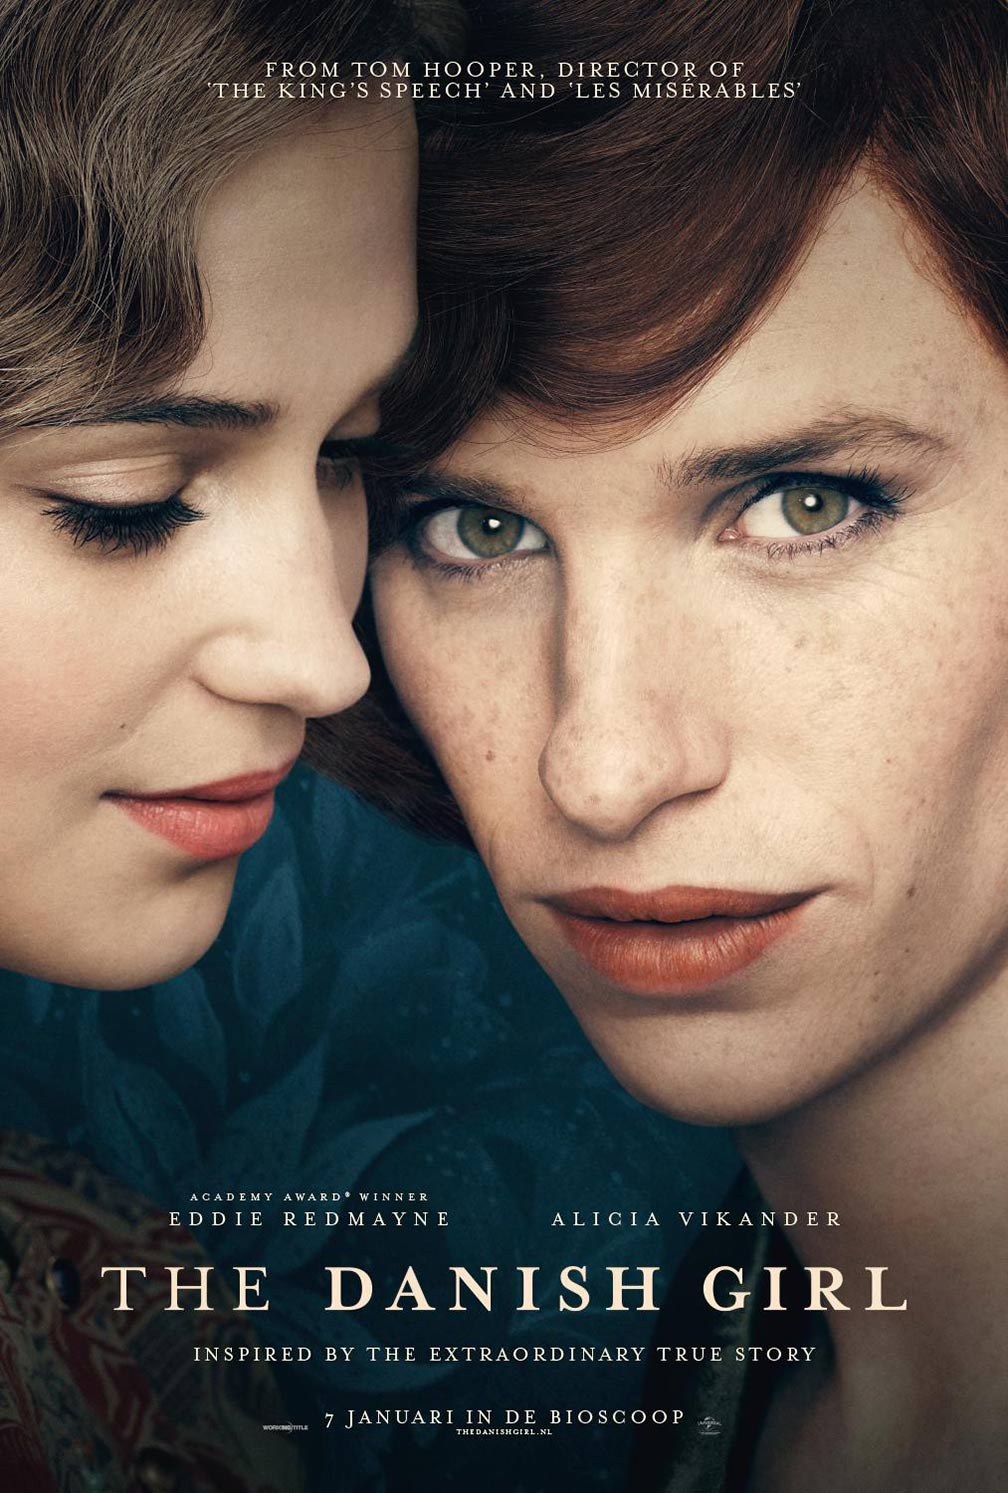 The Danish Girl, 2015 directed by Tim Hooper